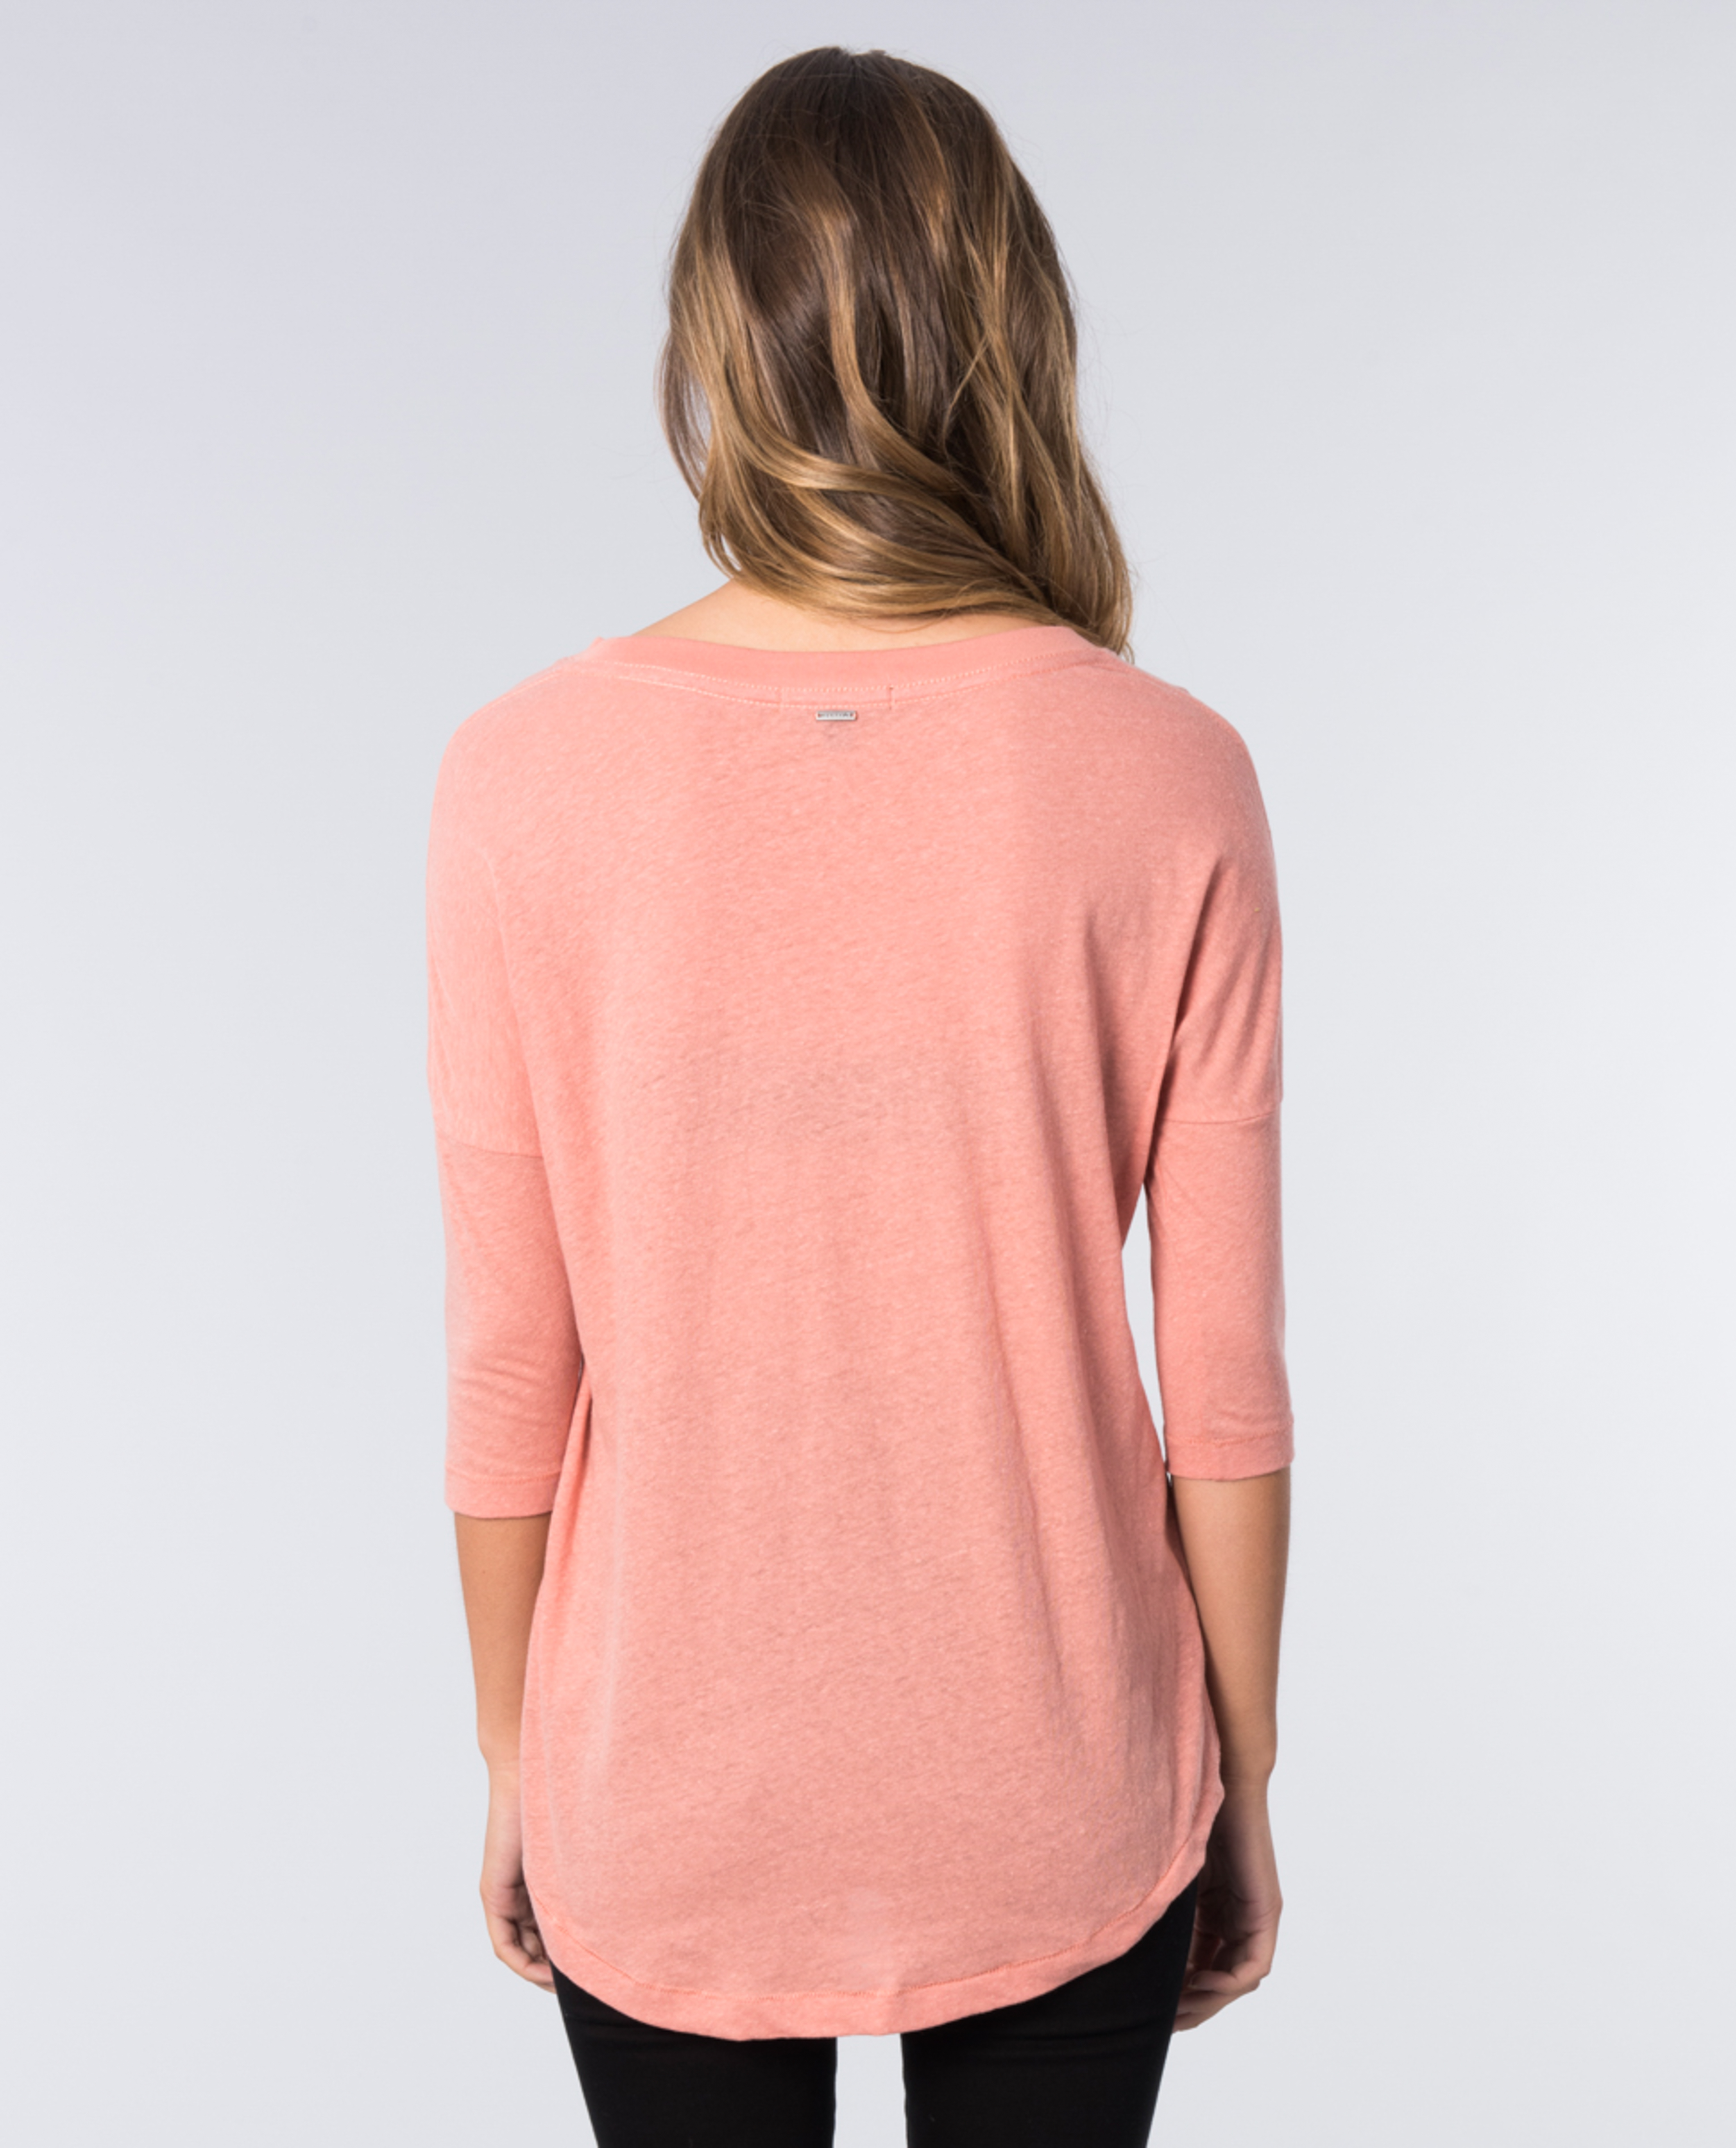 Barely There 3/4 Sleeve Tee